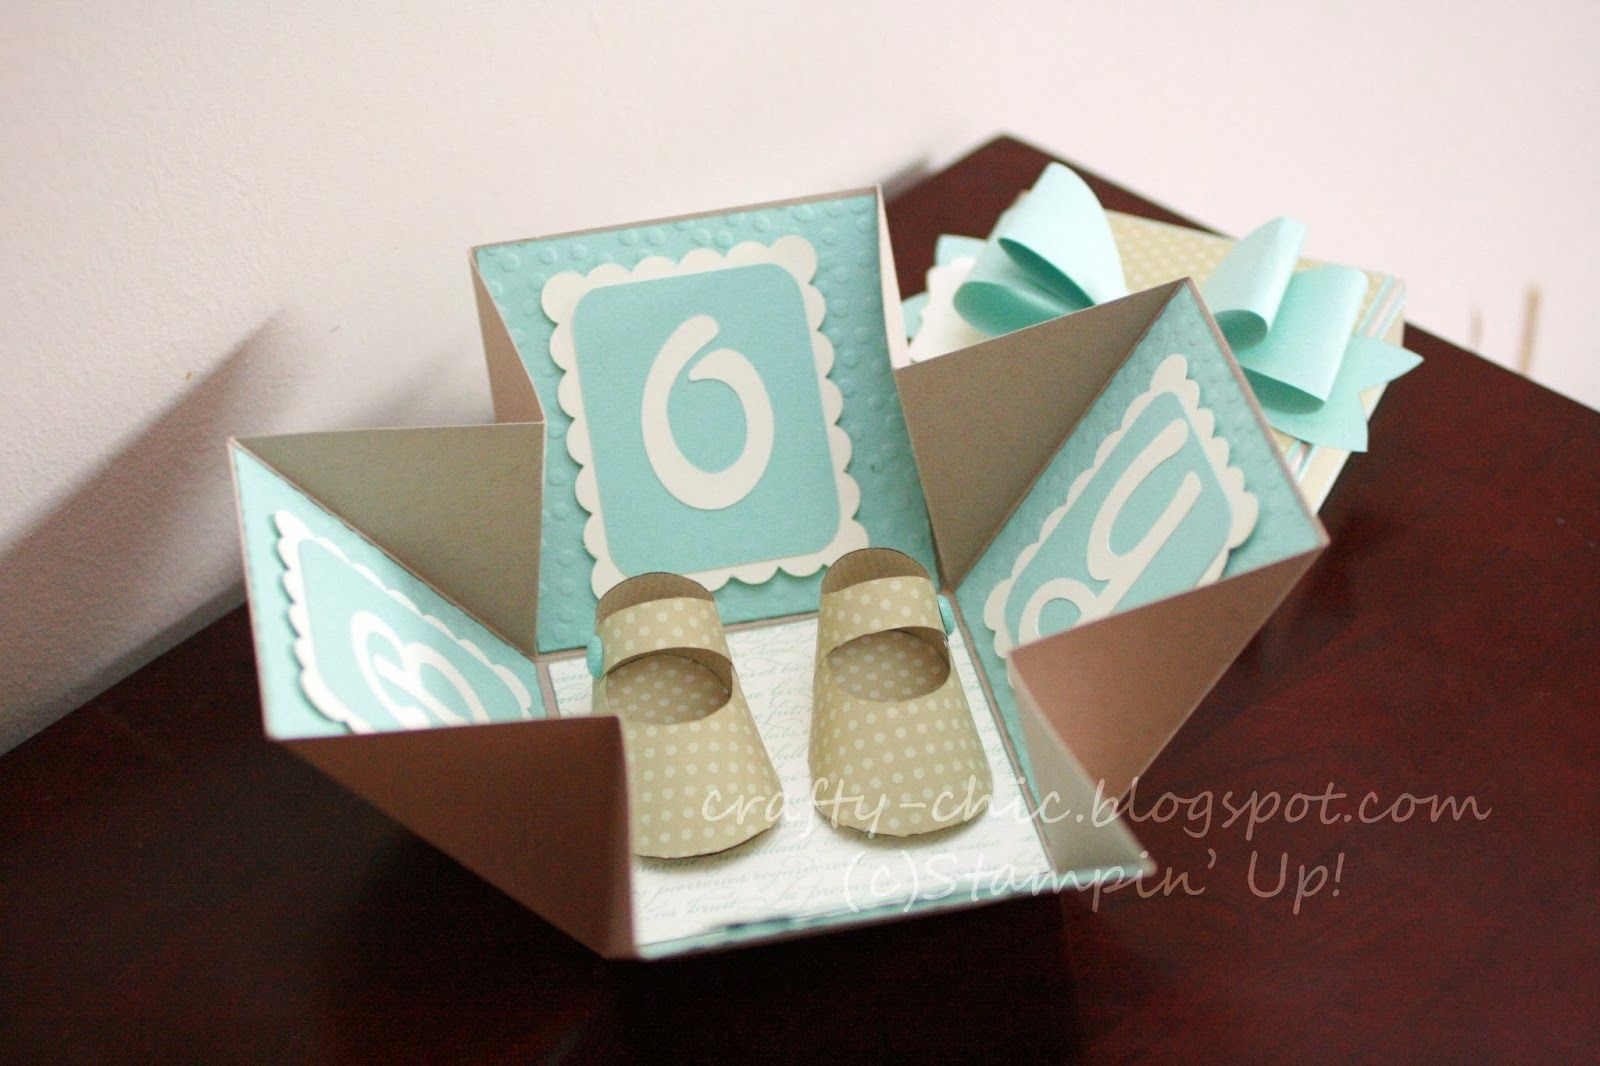 Crafty Chic Stampin' Up Blog, Stamp Crazy: Exploding box